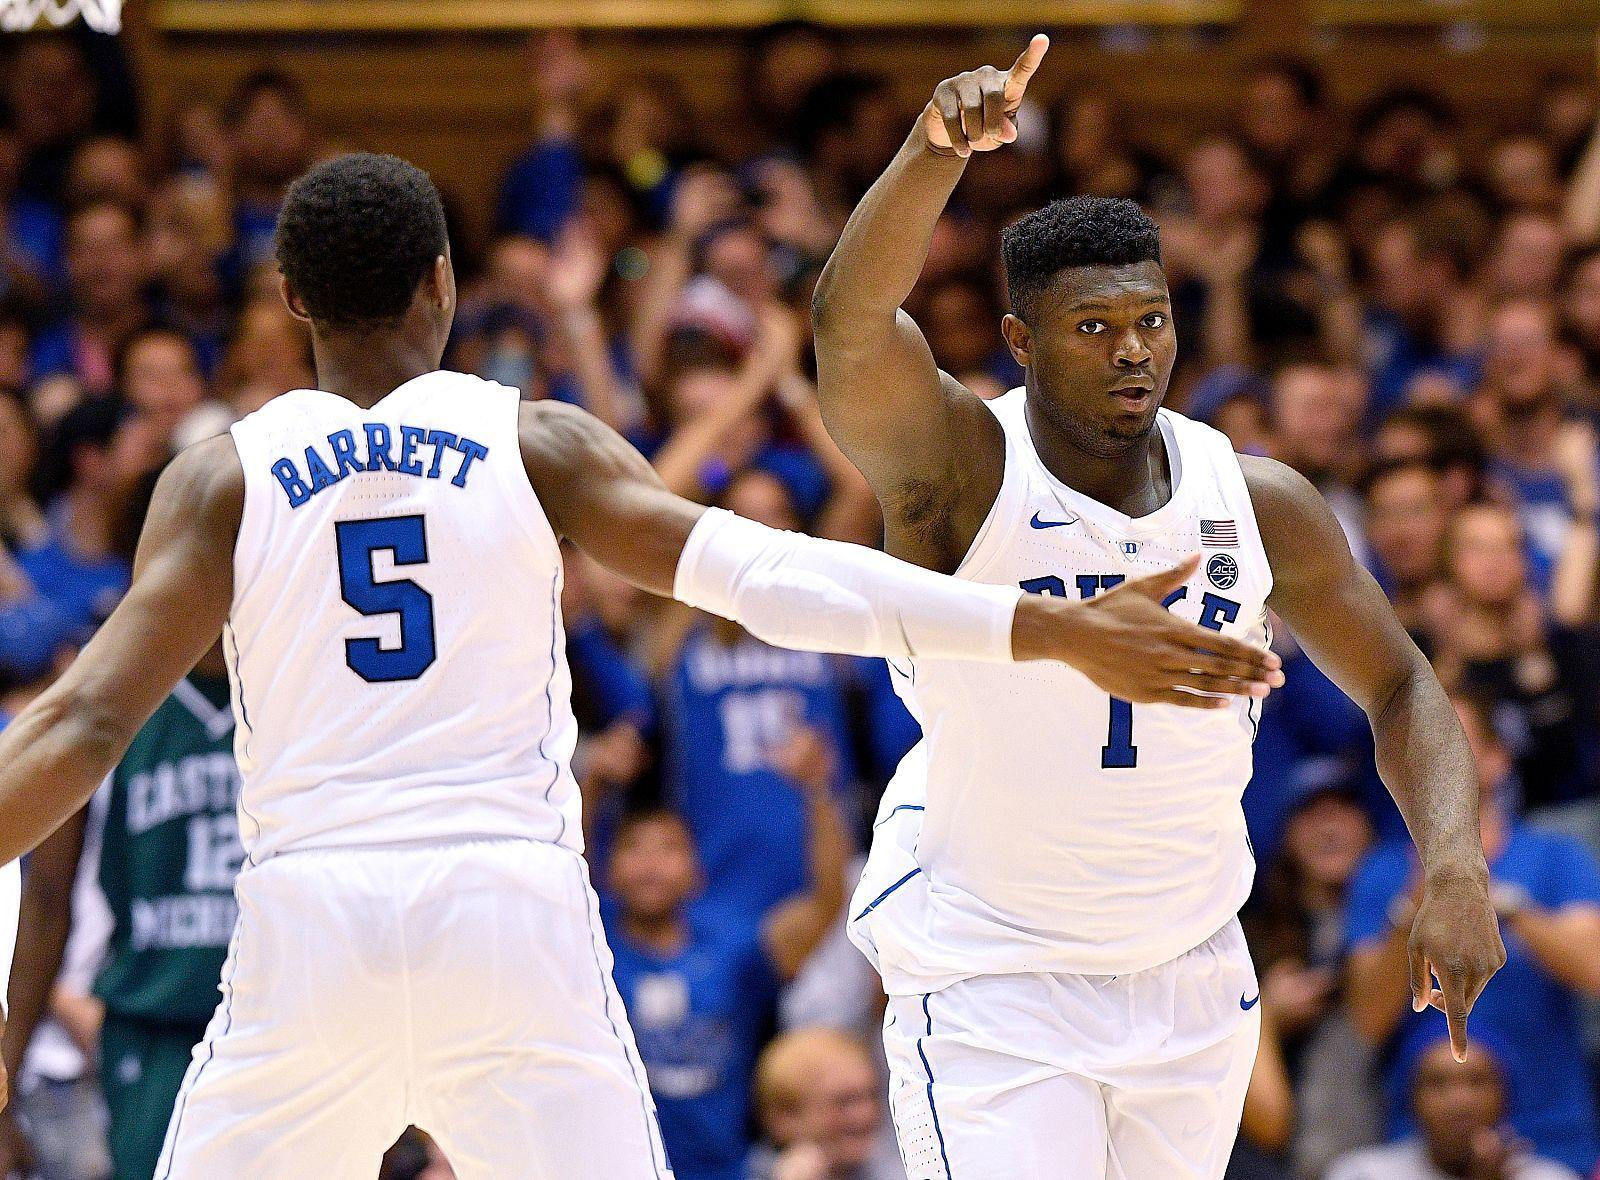 Duke Basketball: Blue Devils can set an ACC record with 'death lineup'